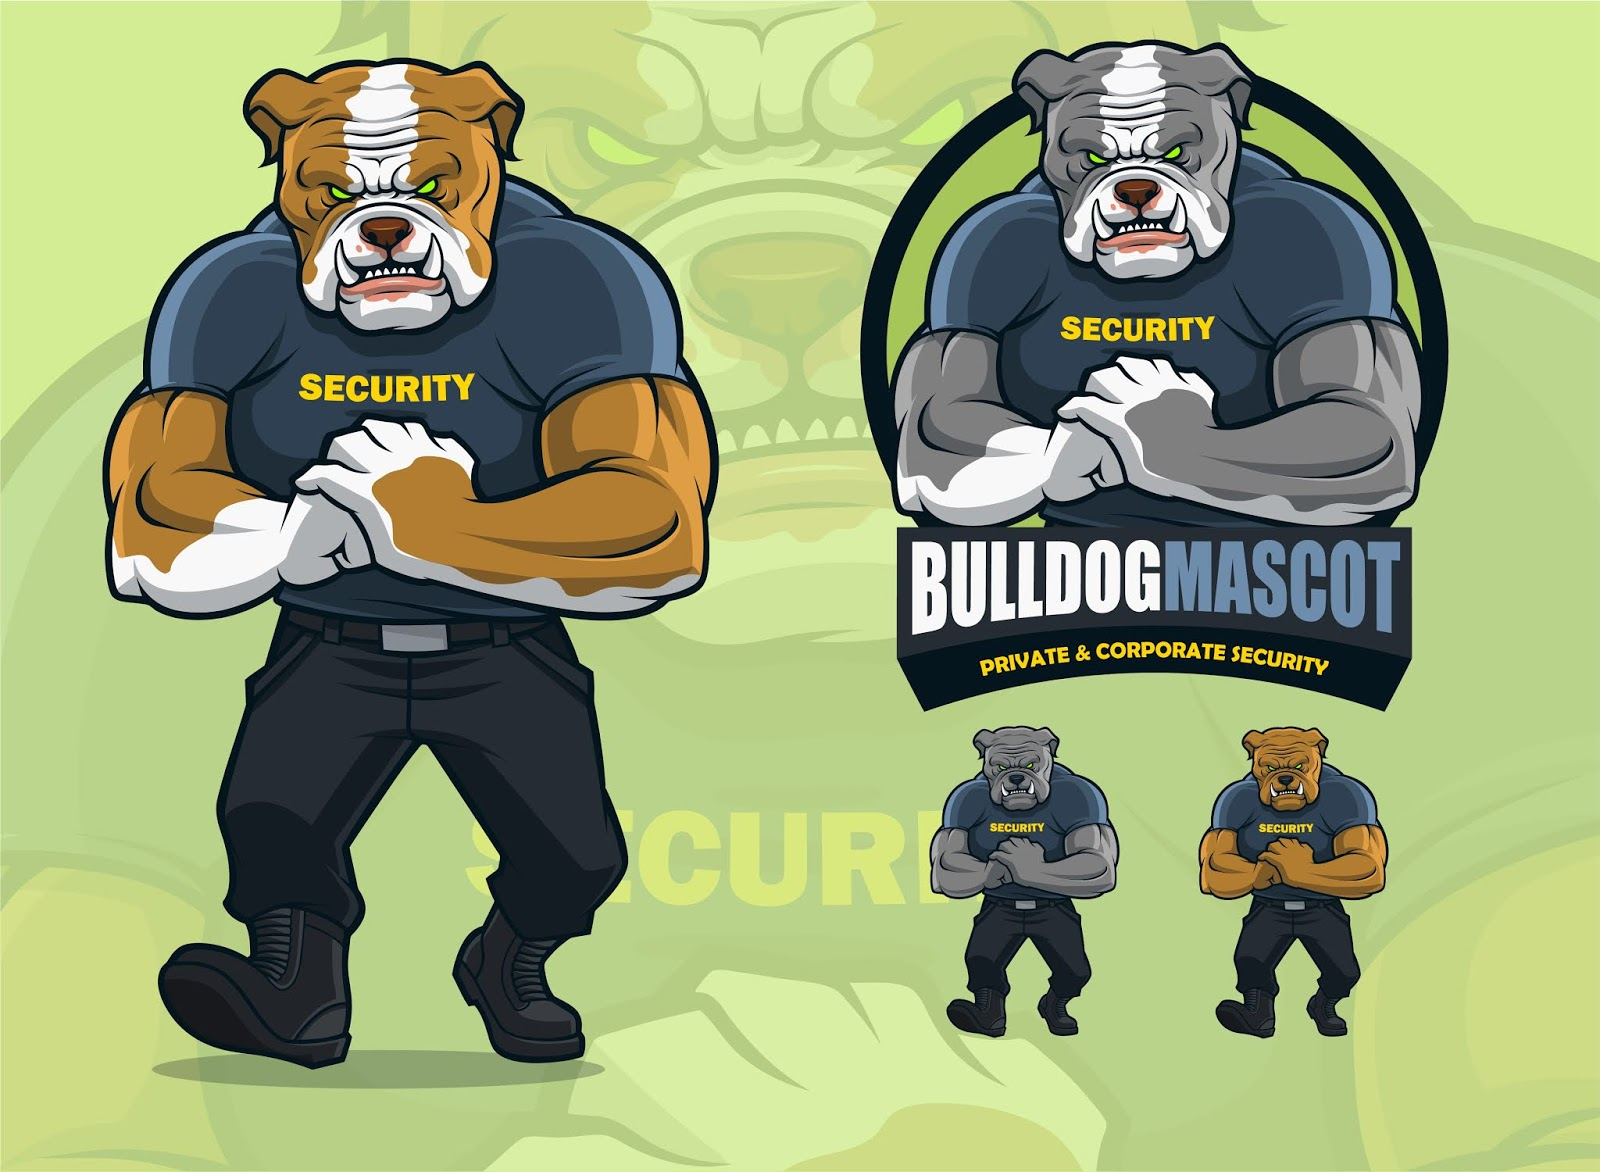 Bulldog Mascot Security Companies.jpg Free Download Vector CDR, AI, EPS and PNG Formats